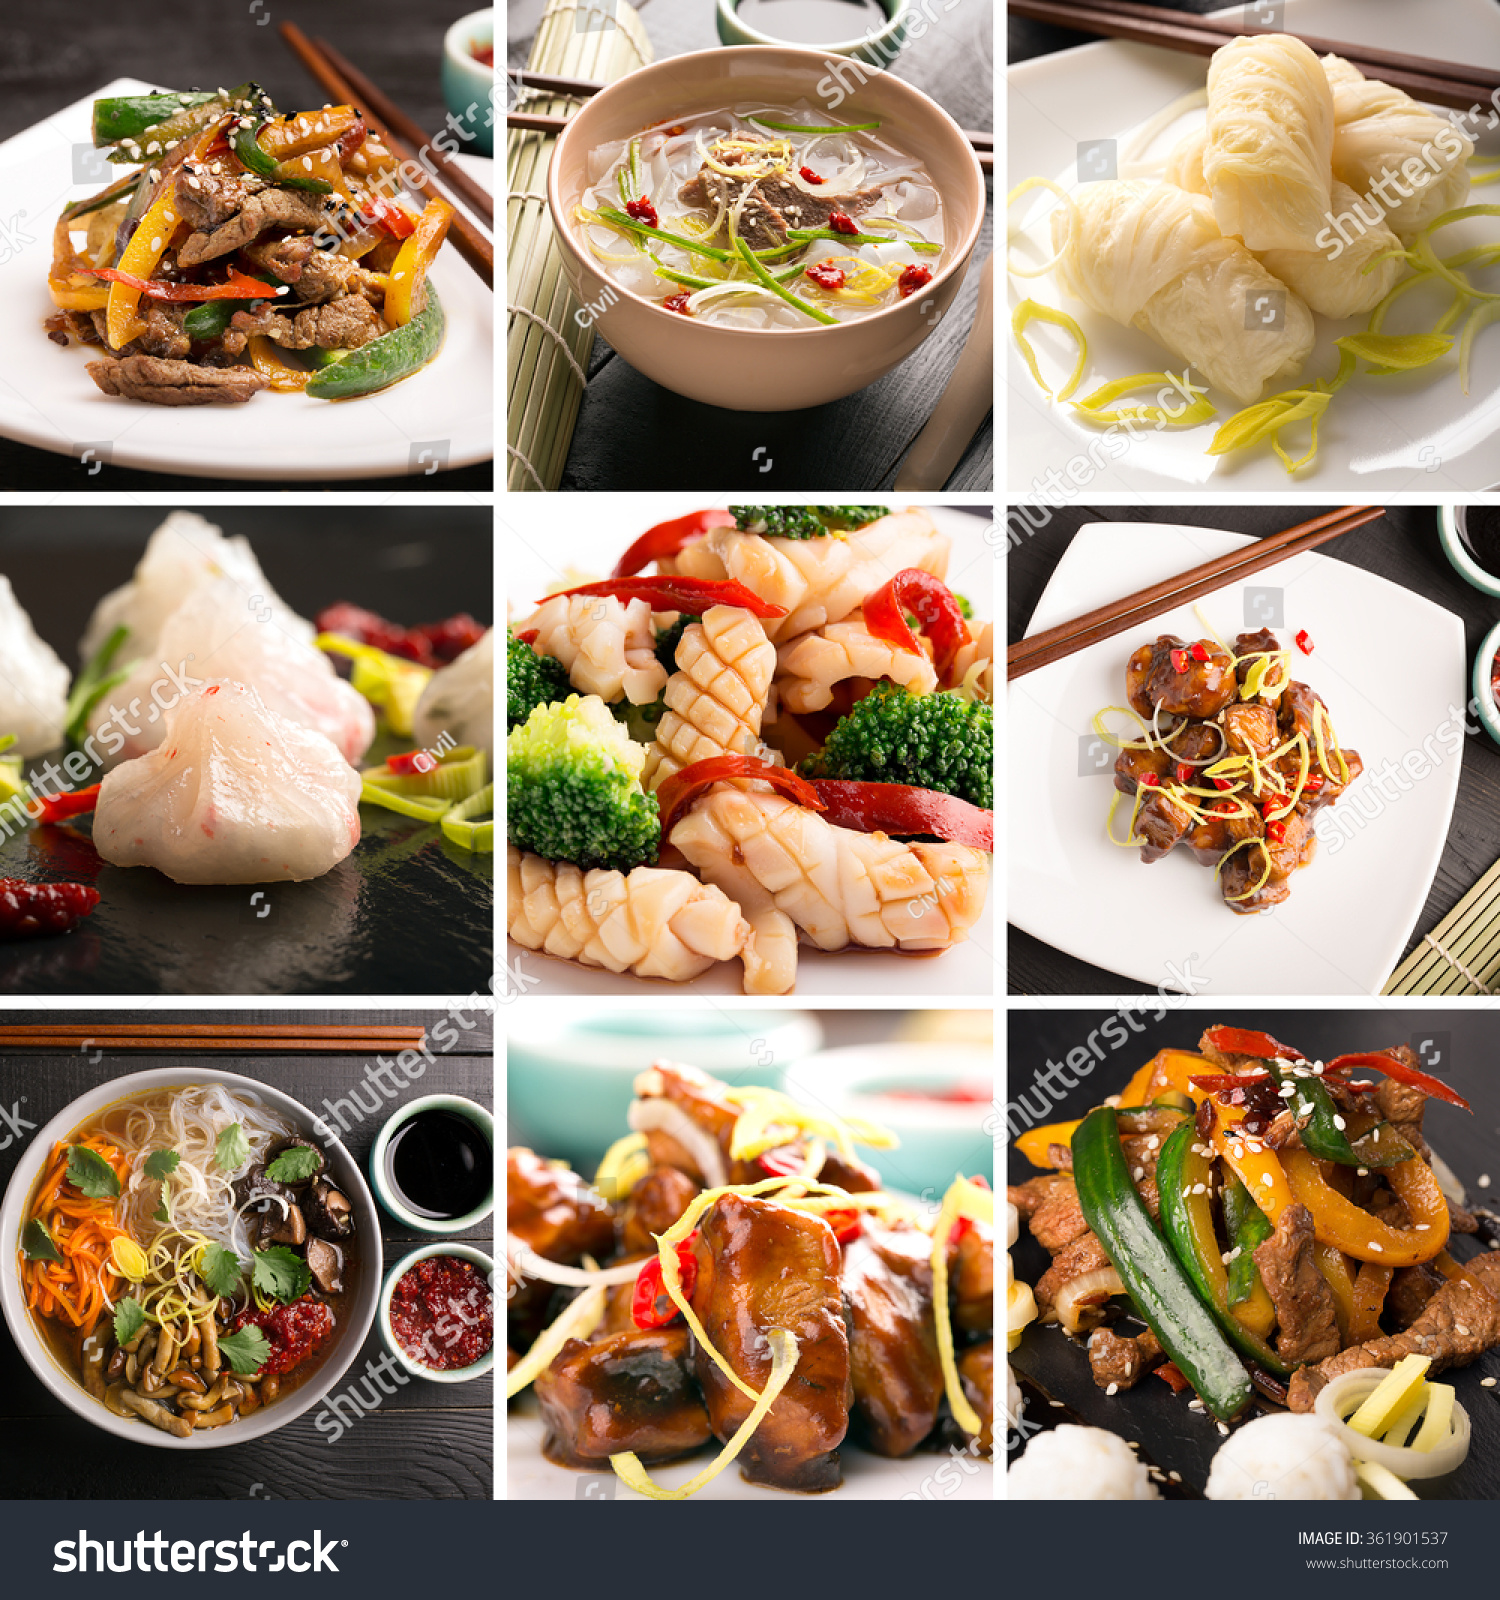 Traditional chinese cuisine images for Authentic asian cuisine